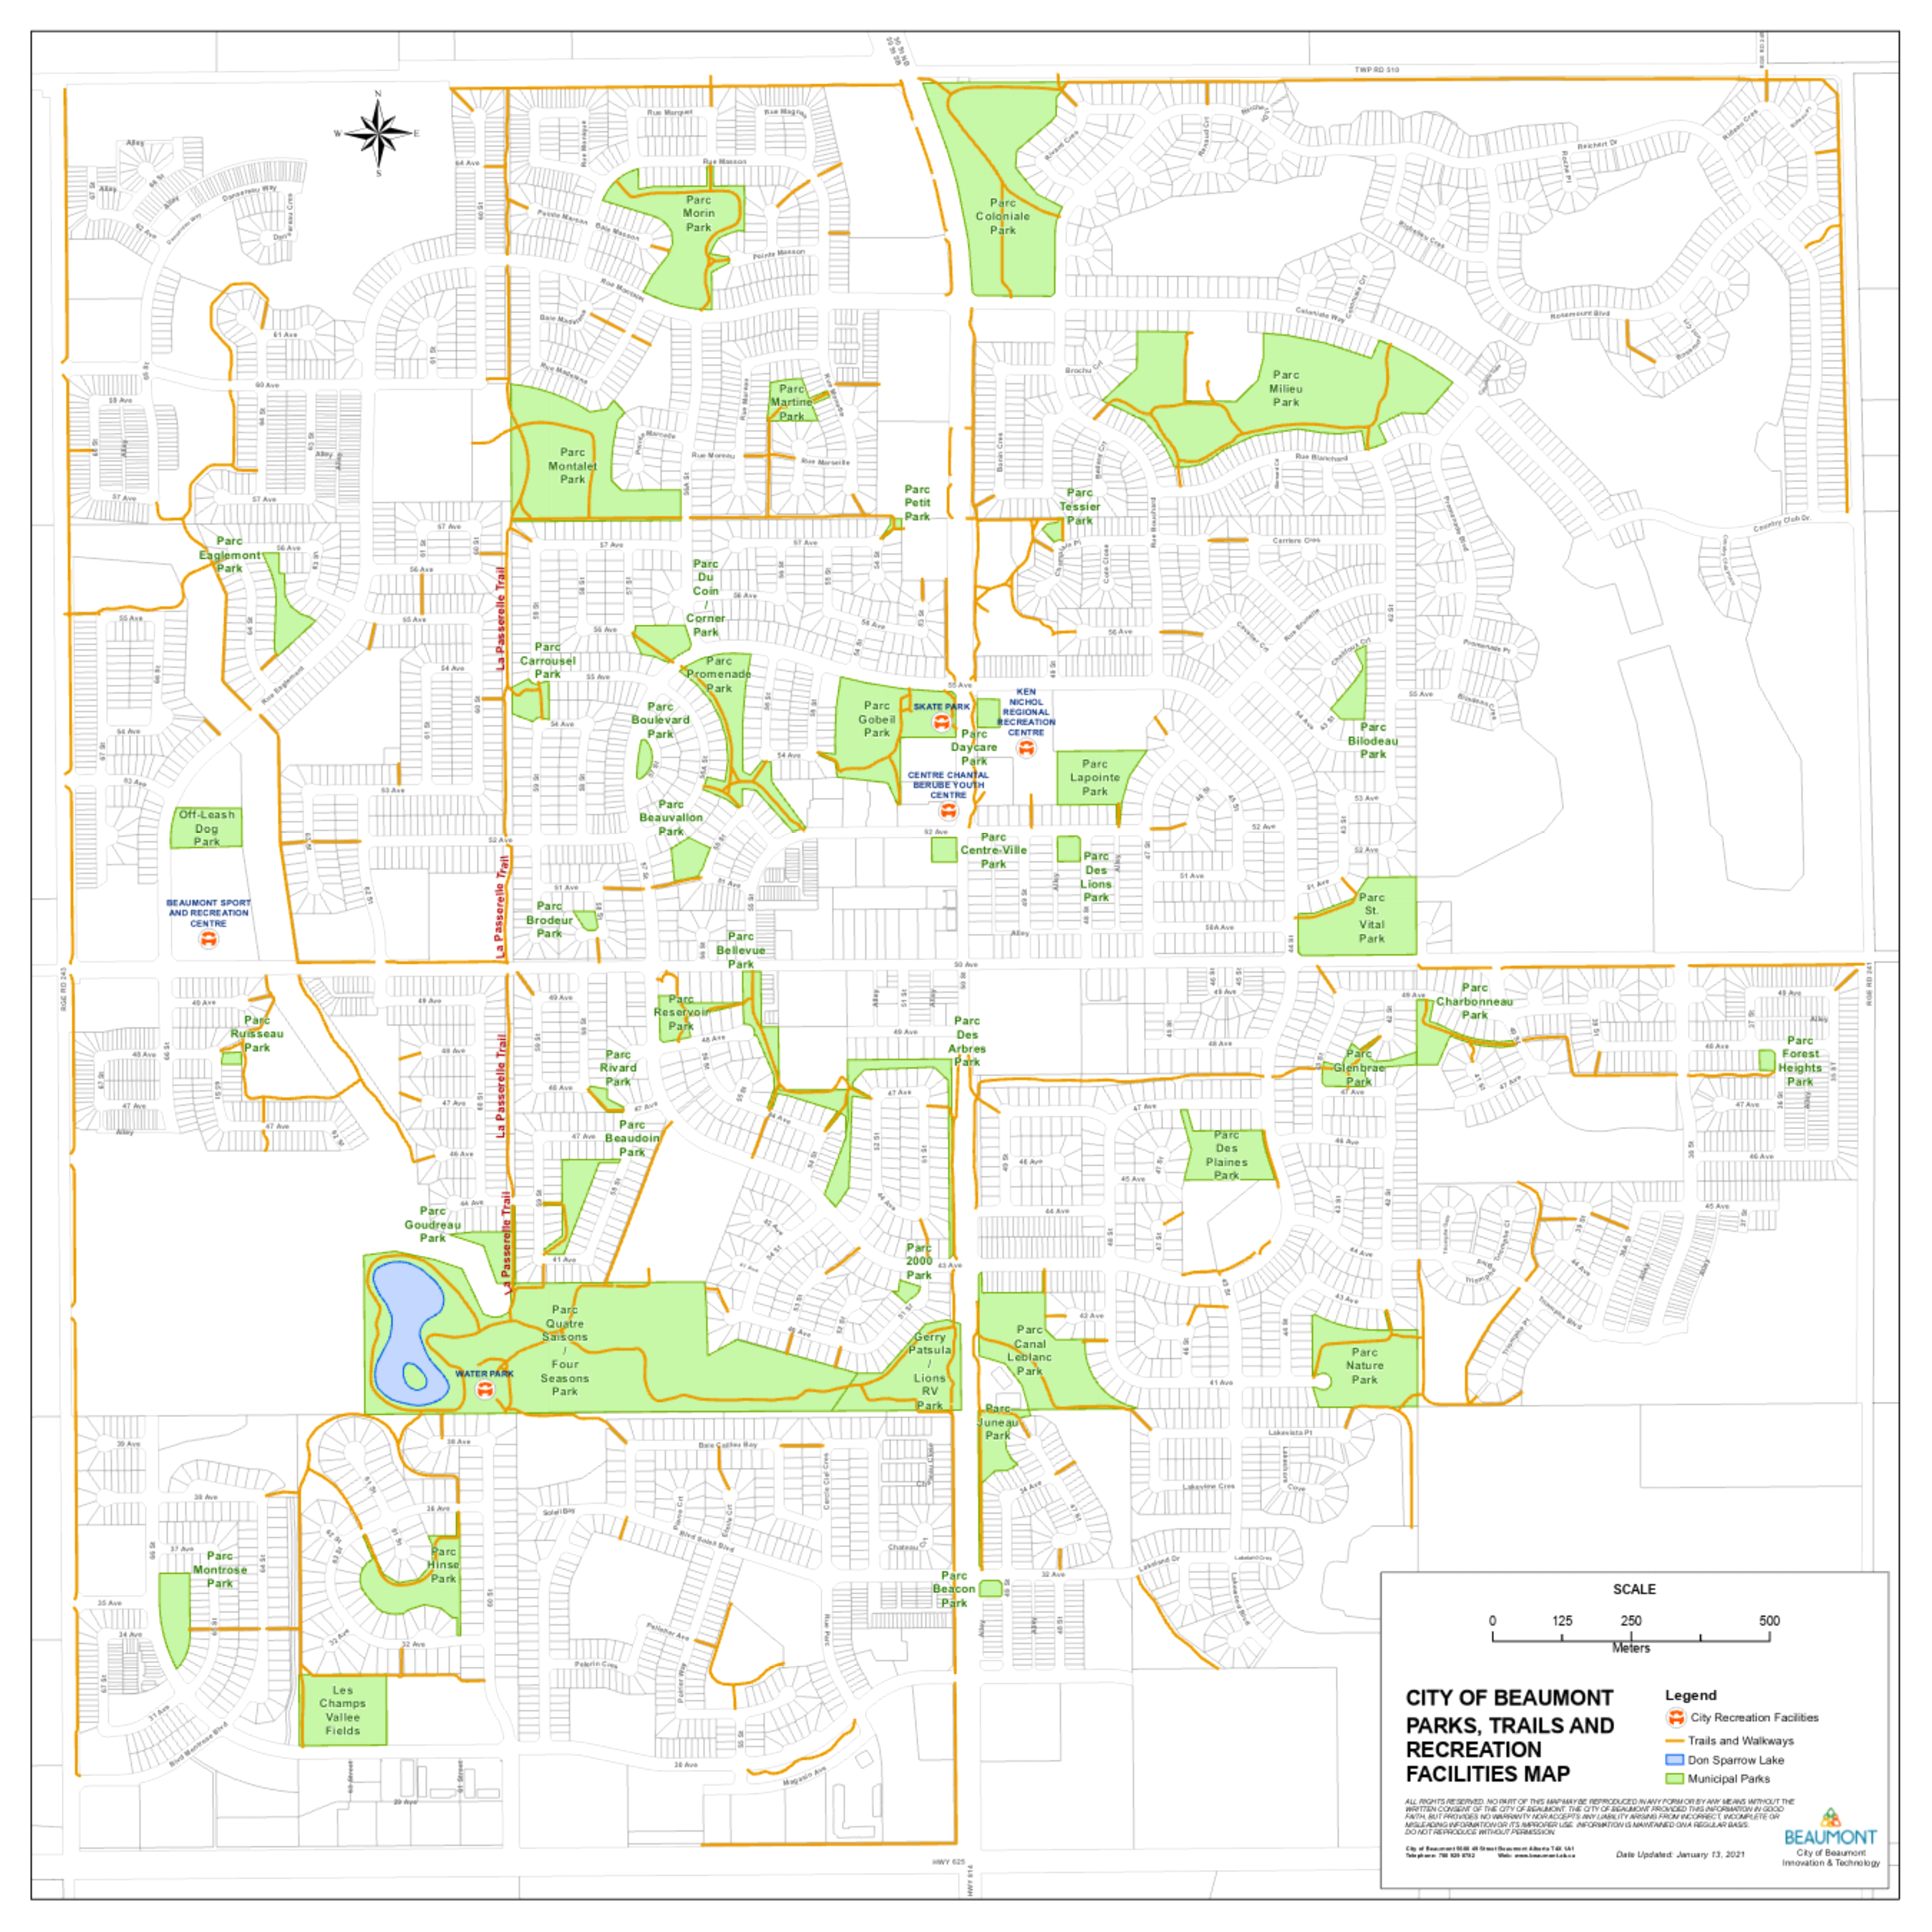 Parks, Trails and Recreation Facilities Map